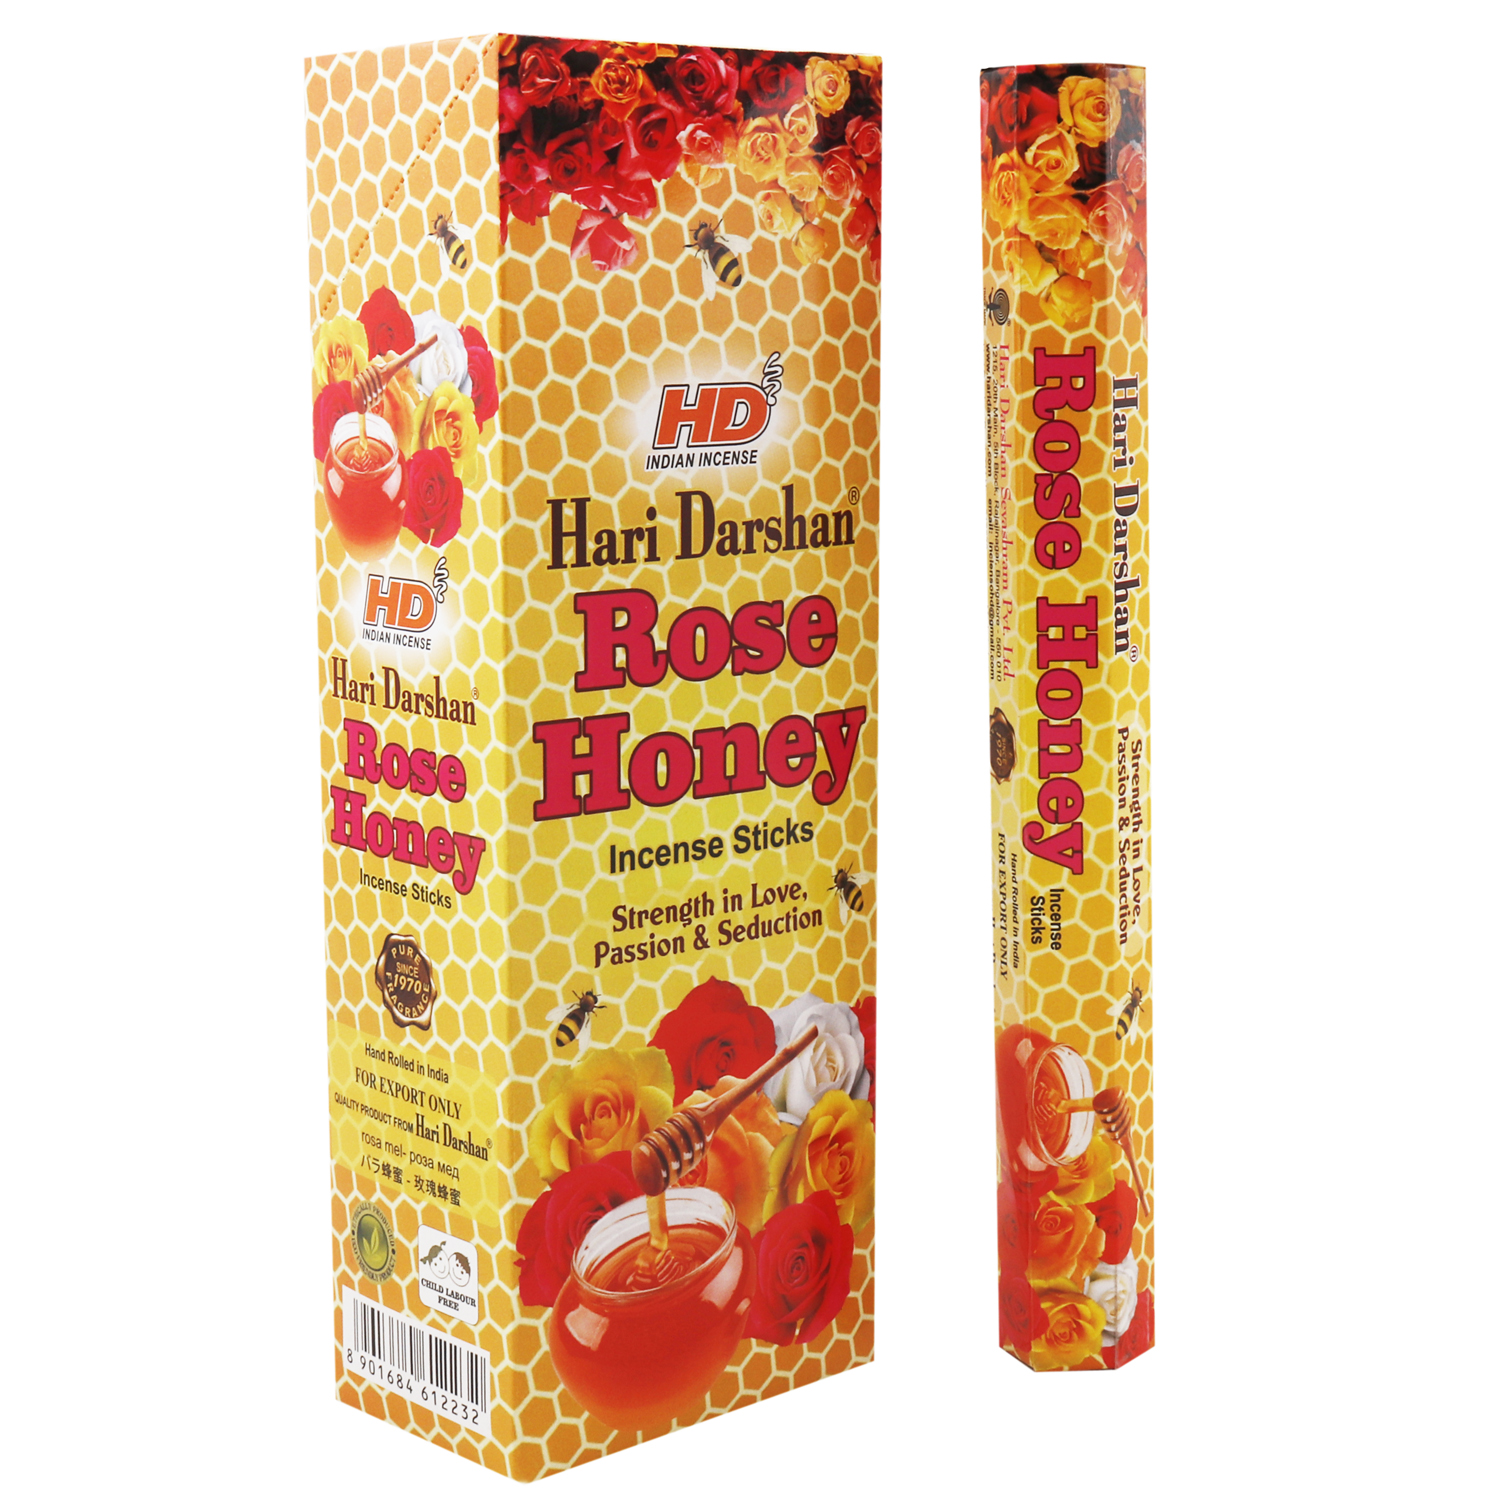 HARI DARSHAN ROSE HONEY / ROSA MIEL